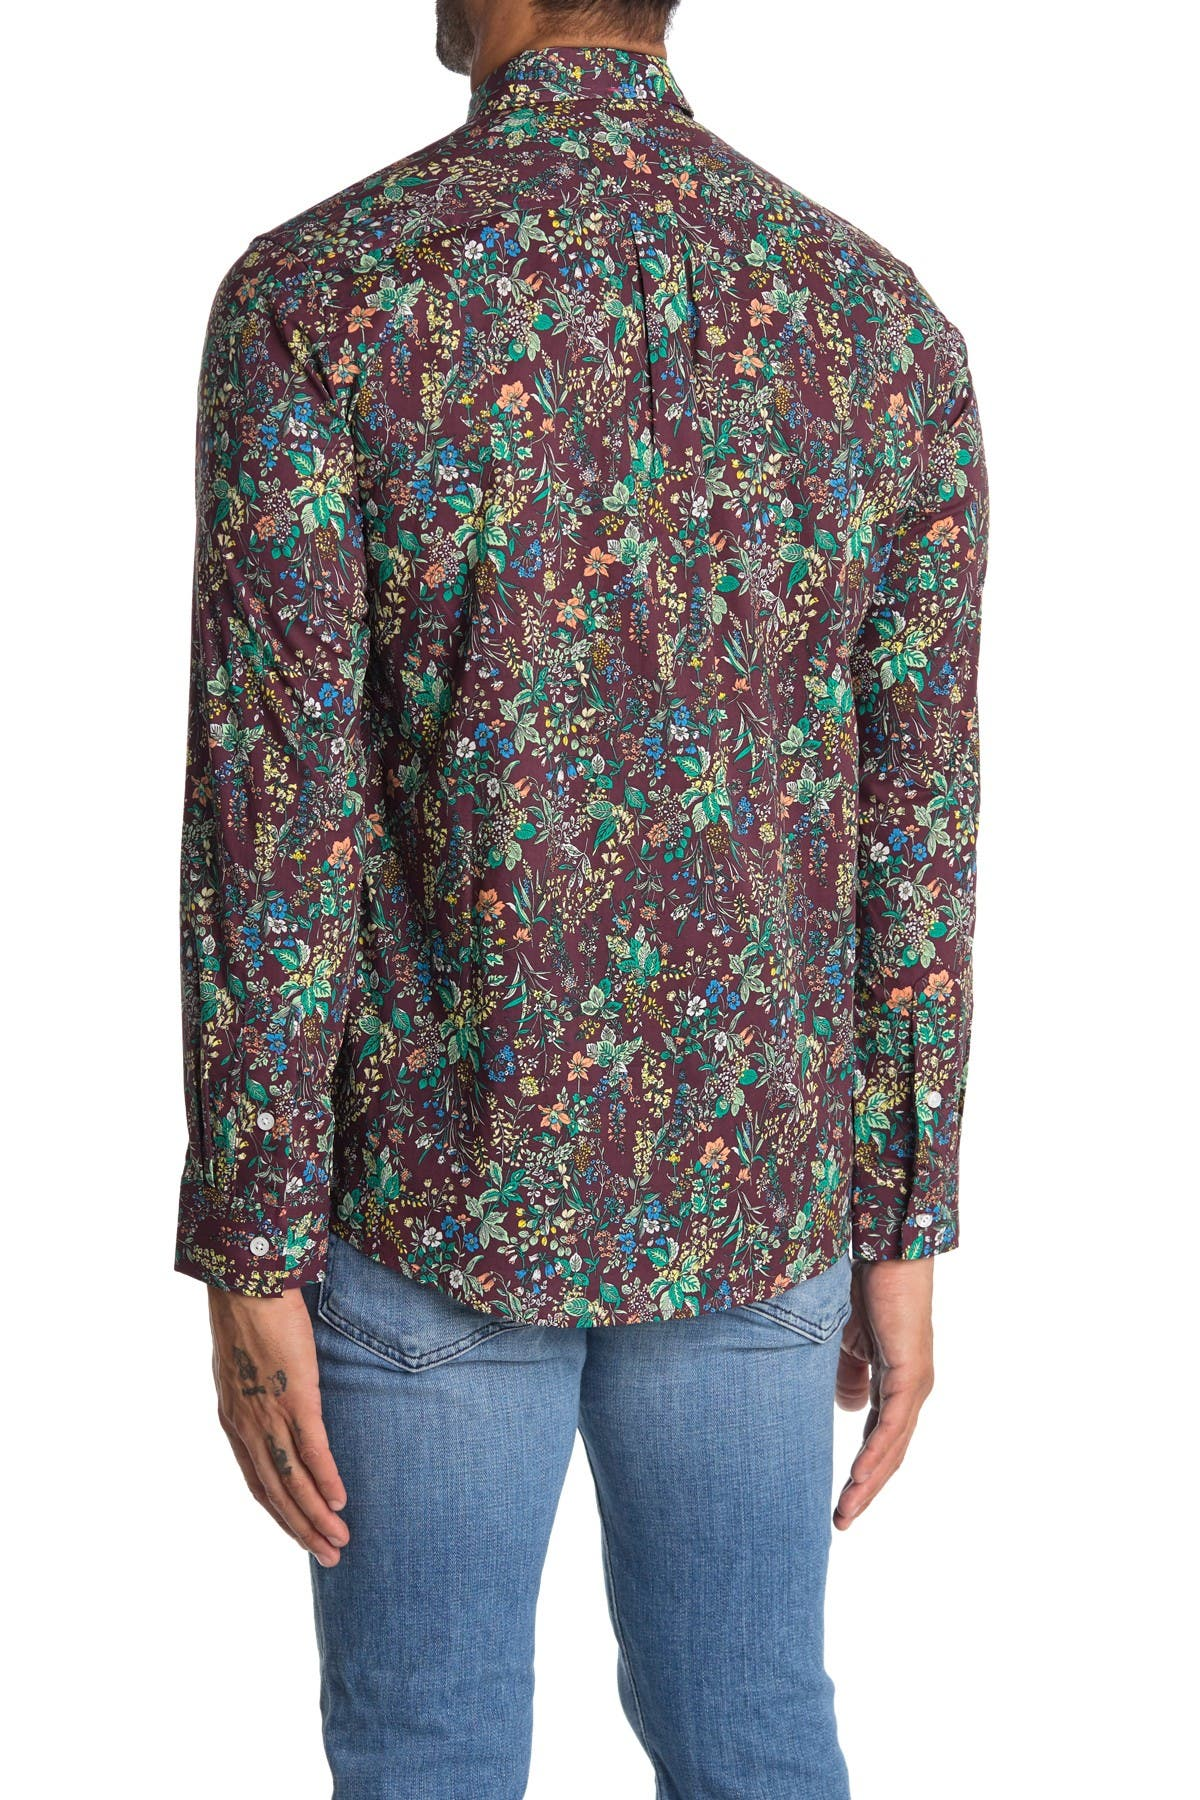 Image of IMPATIENT WOLVES Double Up Floral Long Sleeve Button Down Shirt